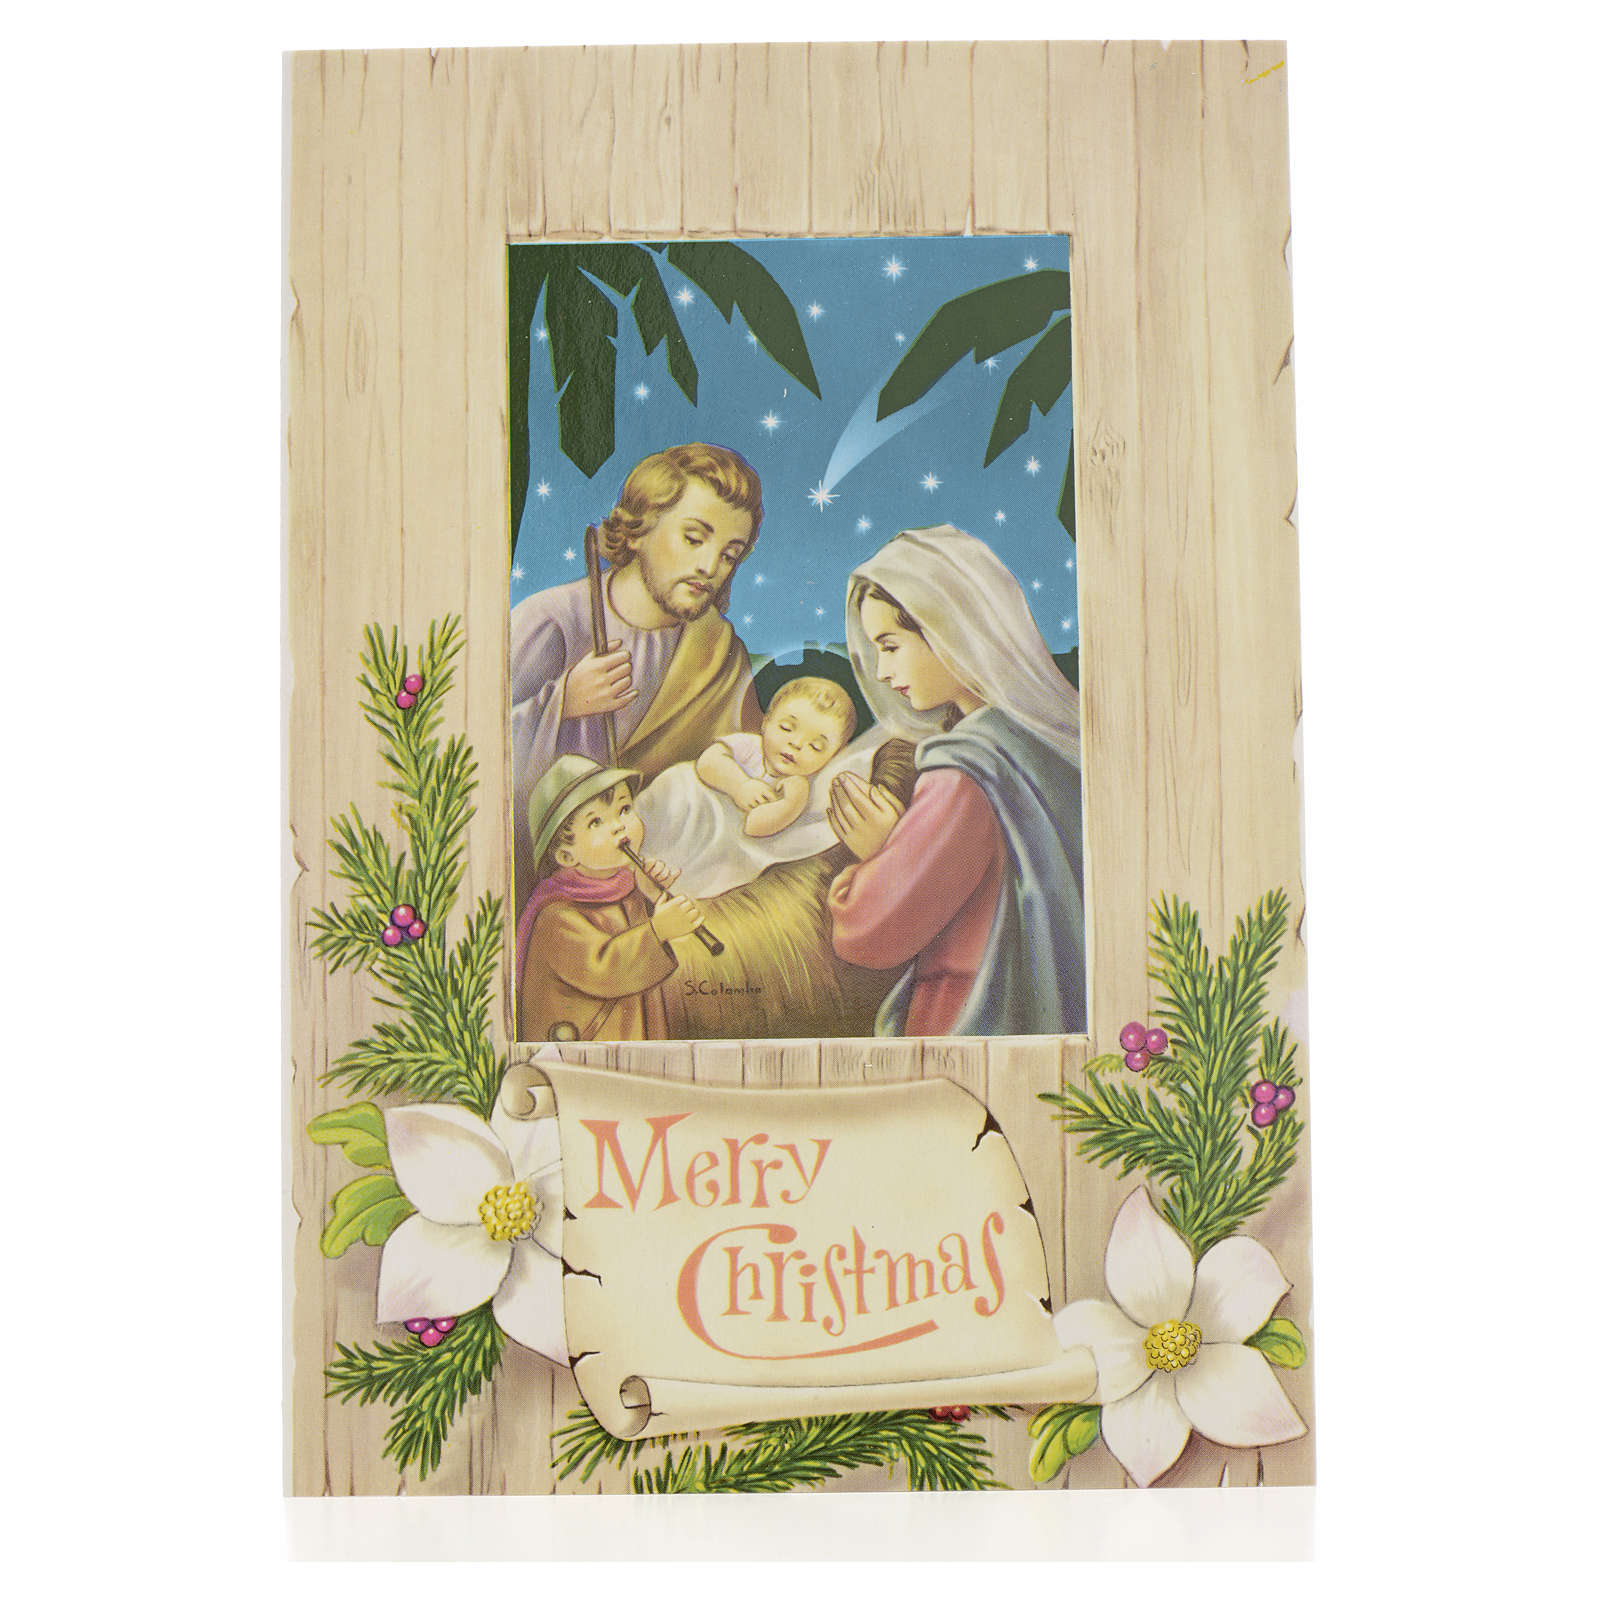 Christmas Card with Merry Christmas wishes | online sales on HOLYART.com